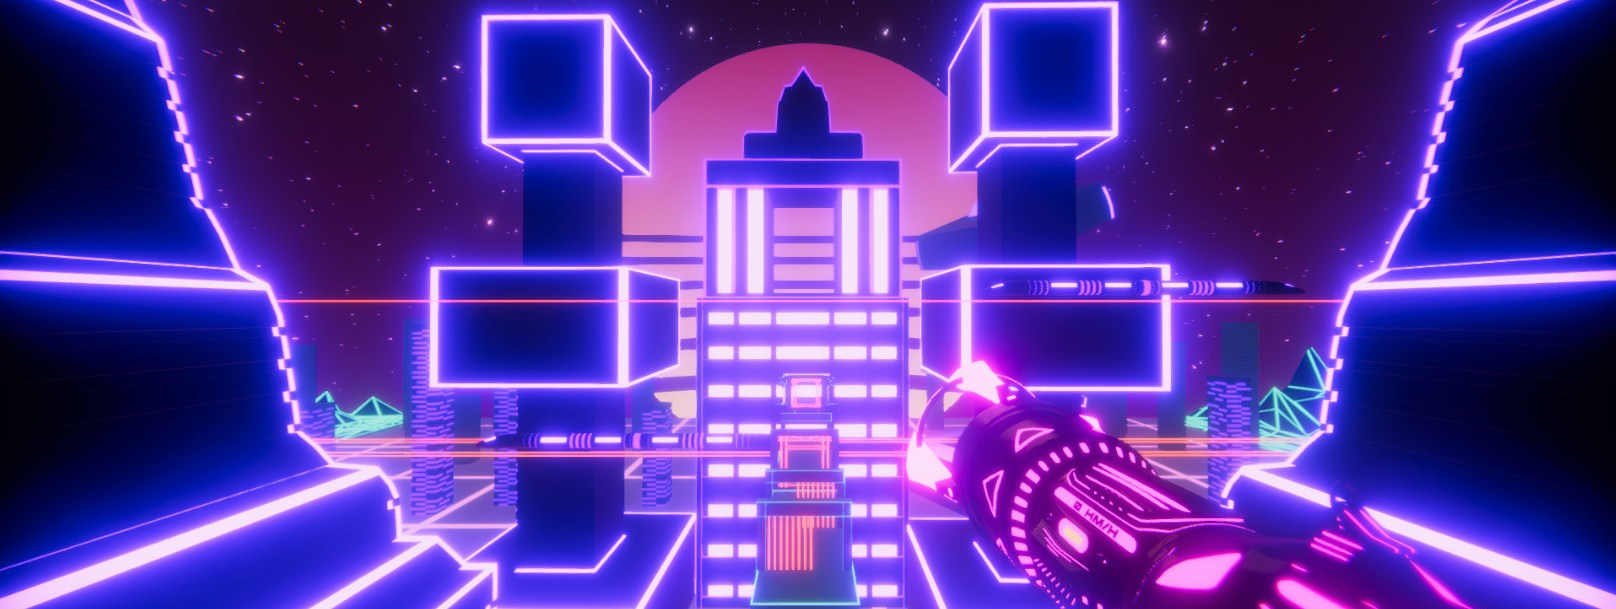 ss b0603b96f053cf1c1970c8696dabc5c5f26dd39b.1920x1080 - NEON BOOST (PLATAFORMAS 3D FREE TO PLAY)